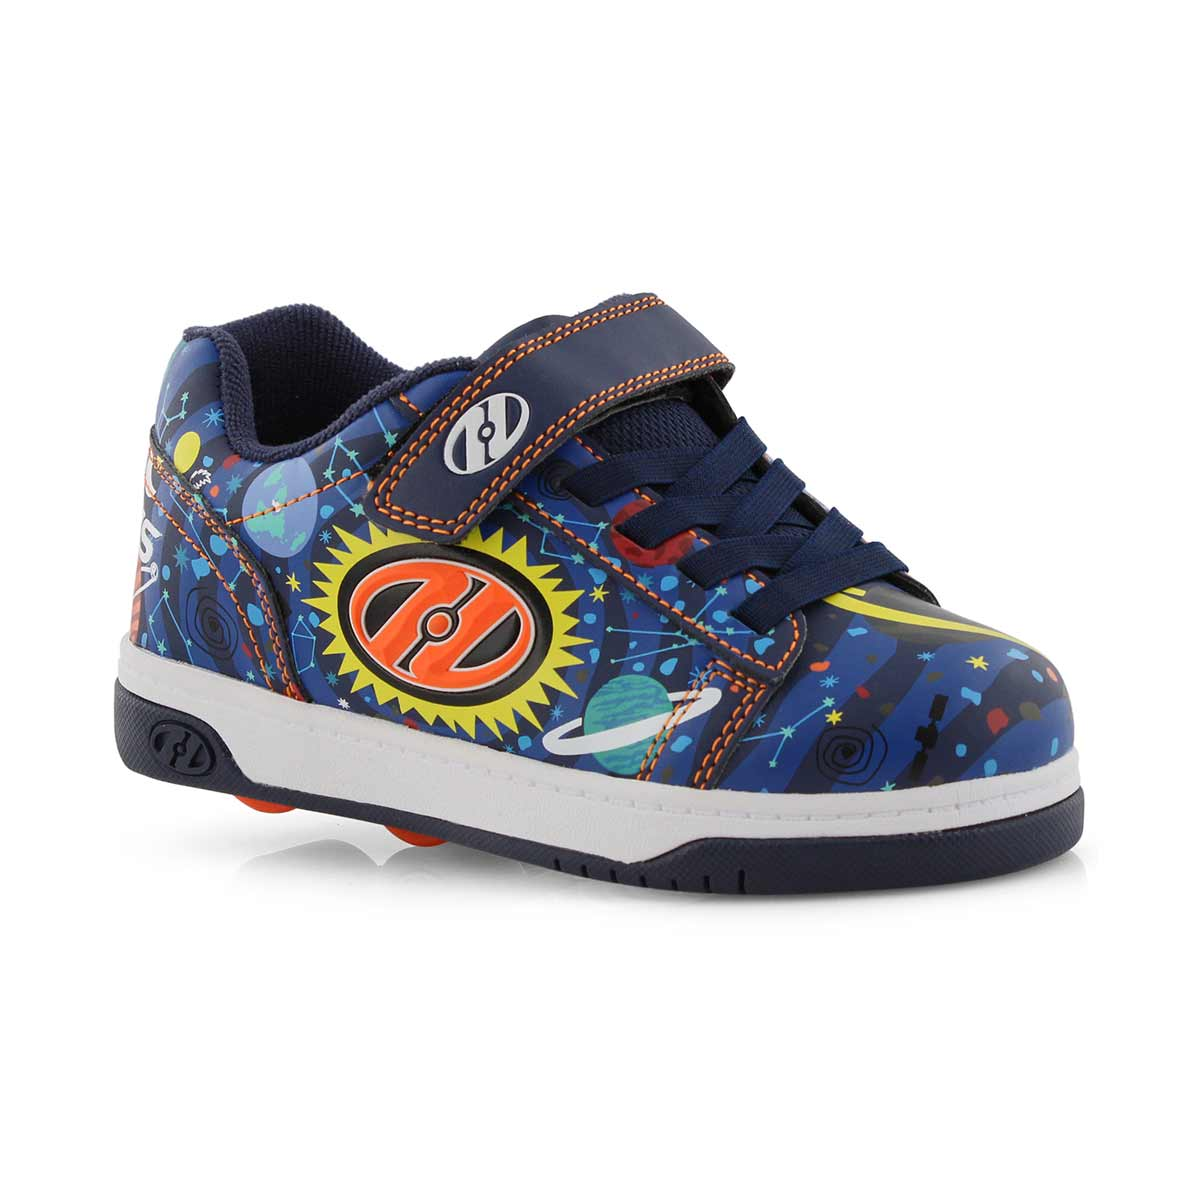 Bys Dual Up X2 nvy/blk skate sneaker